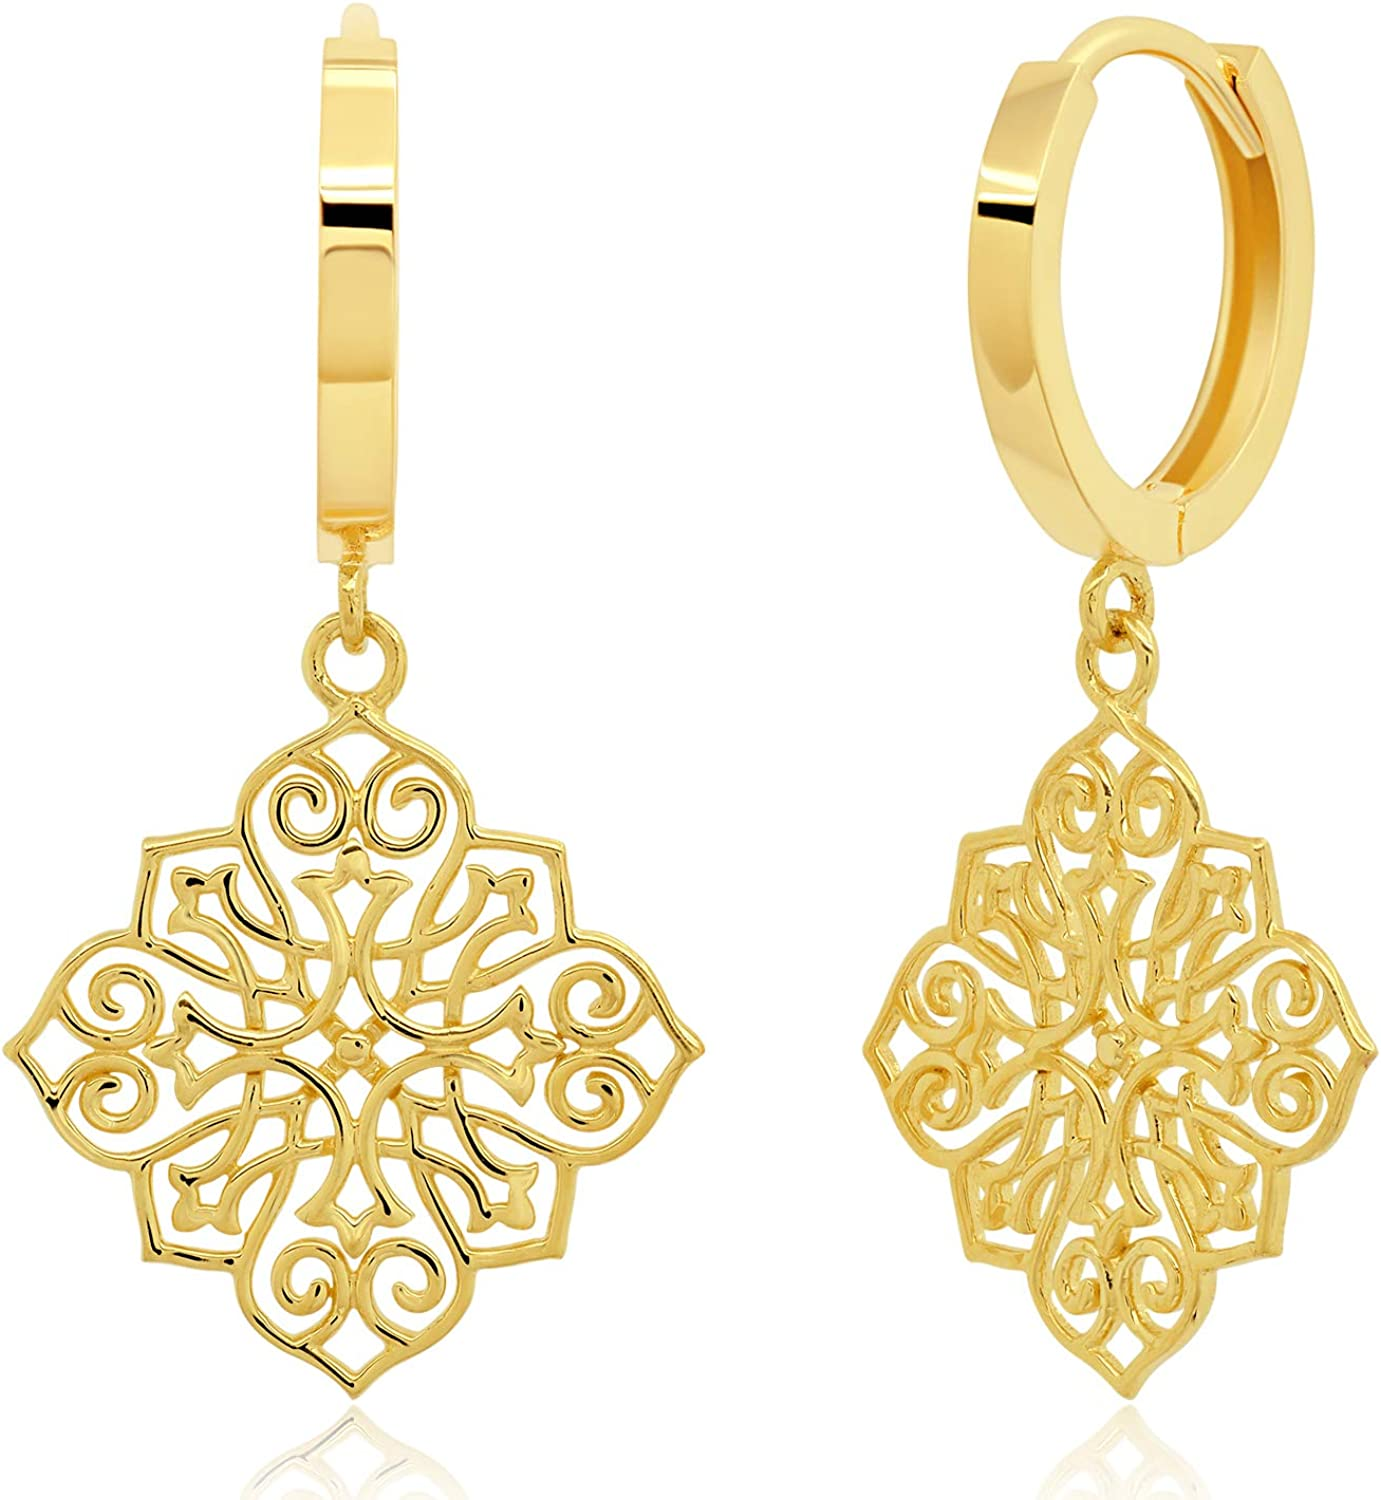 14K Solid Yellow Gold Max 70% OFF Huggie Selling and selling Dangle with Hoop Filigree Earrings